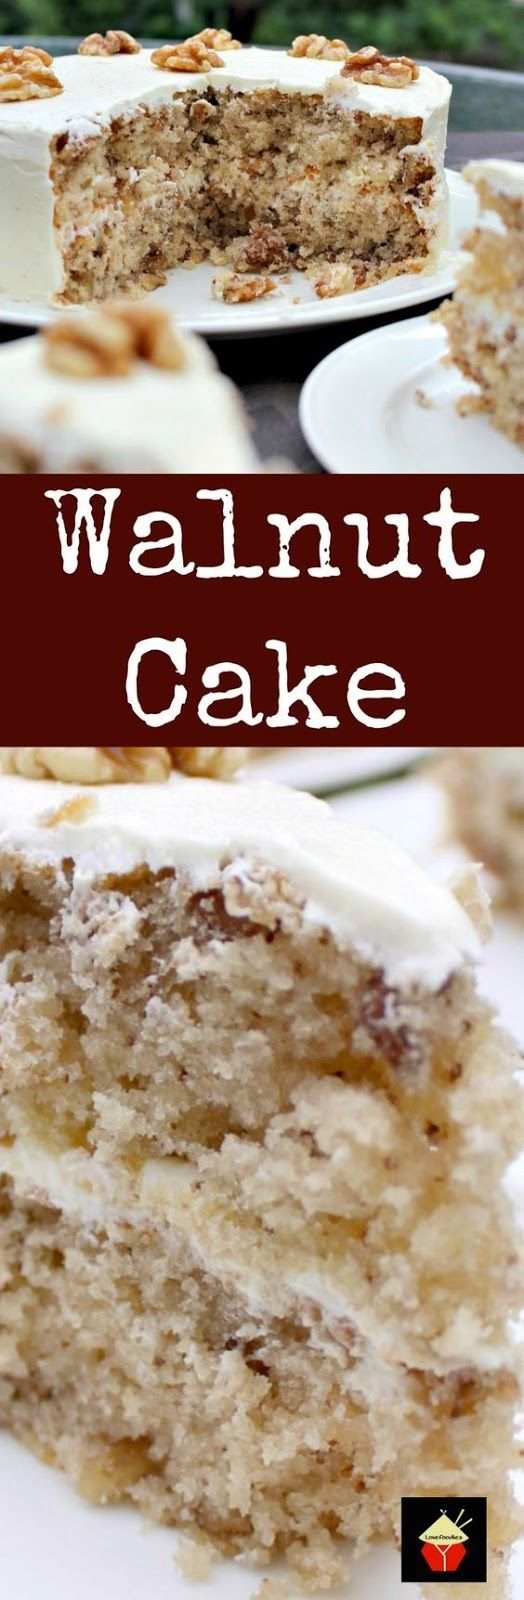 Walnut Cake | Cake And Food Recipe